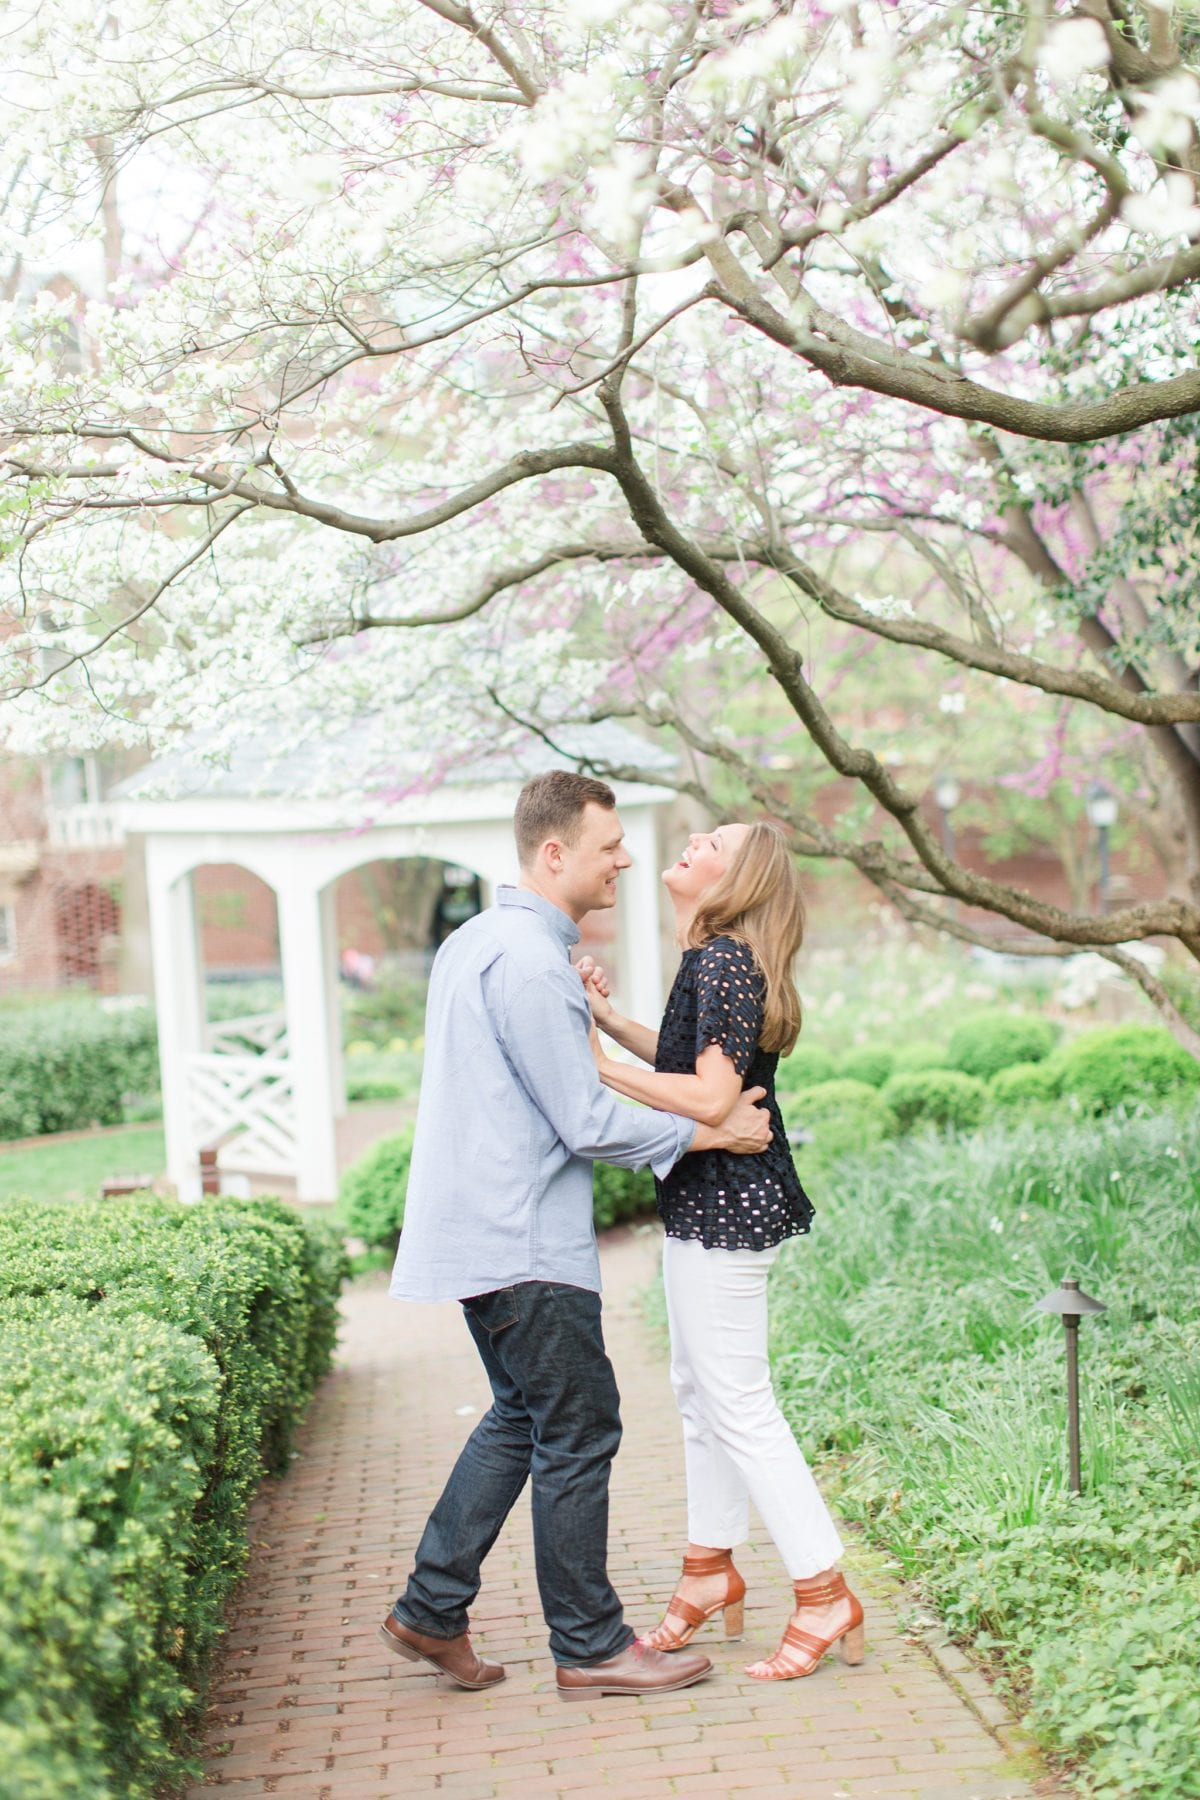 Springtime Old Town Alexandria Engagement Session Matt & Maxie Megan Kelsey Photography-246.jpg